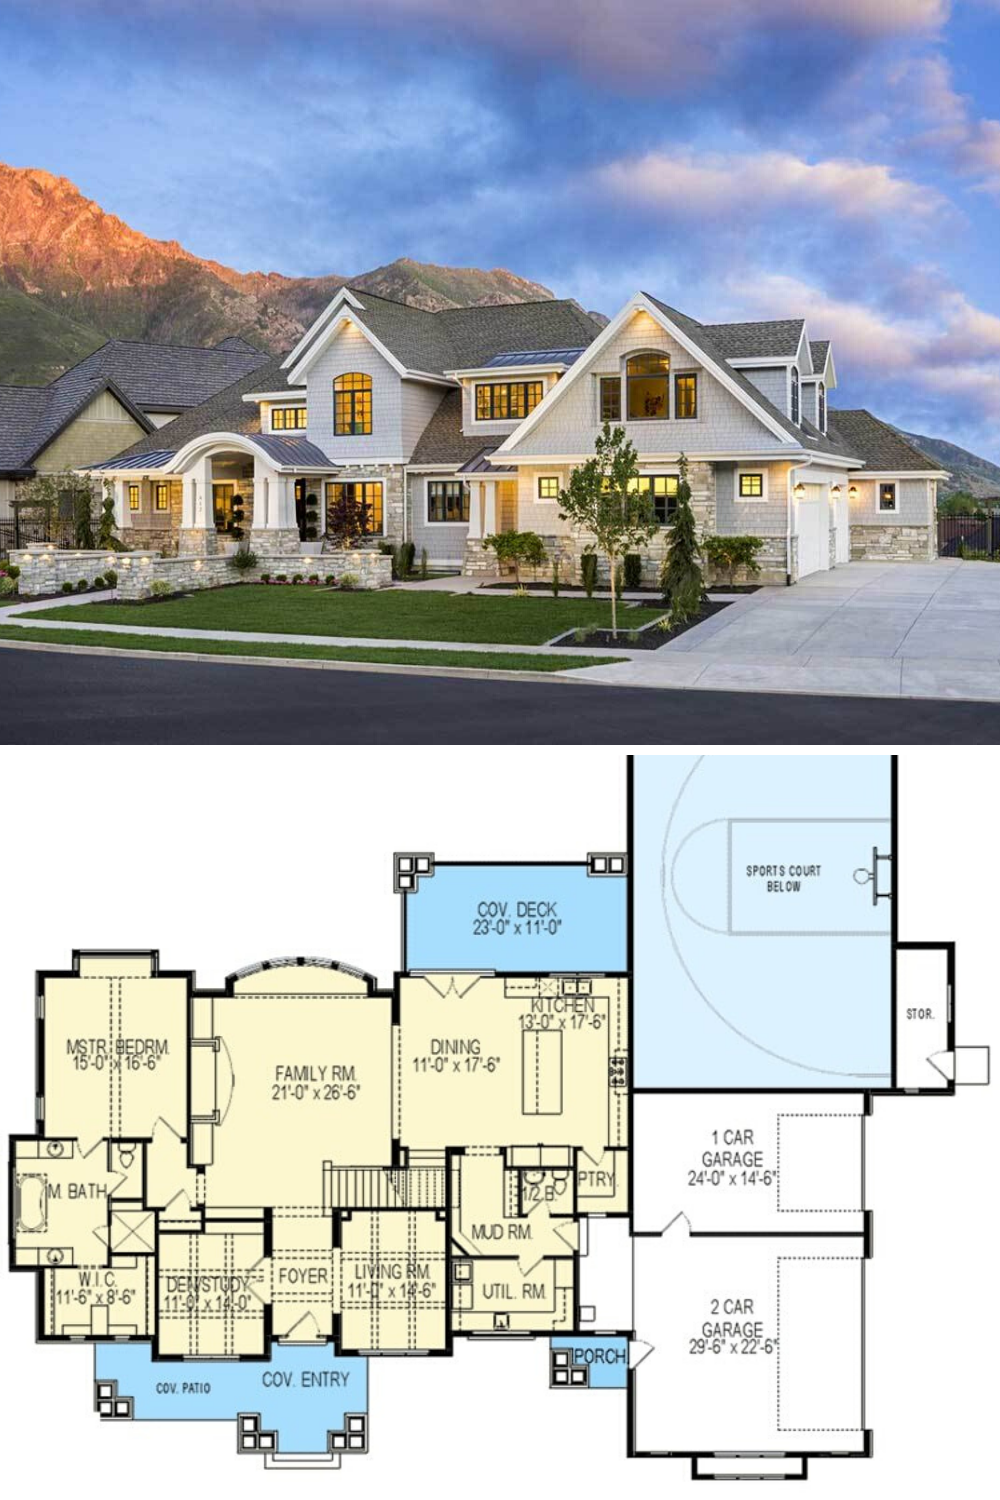 6 Bedroom Two Story Northwest Home With Sports Court Floor Plan In 2020 Craftsman House Plans 4000 Sq Ft House Plans House Plans Farmhouse